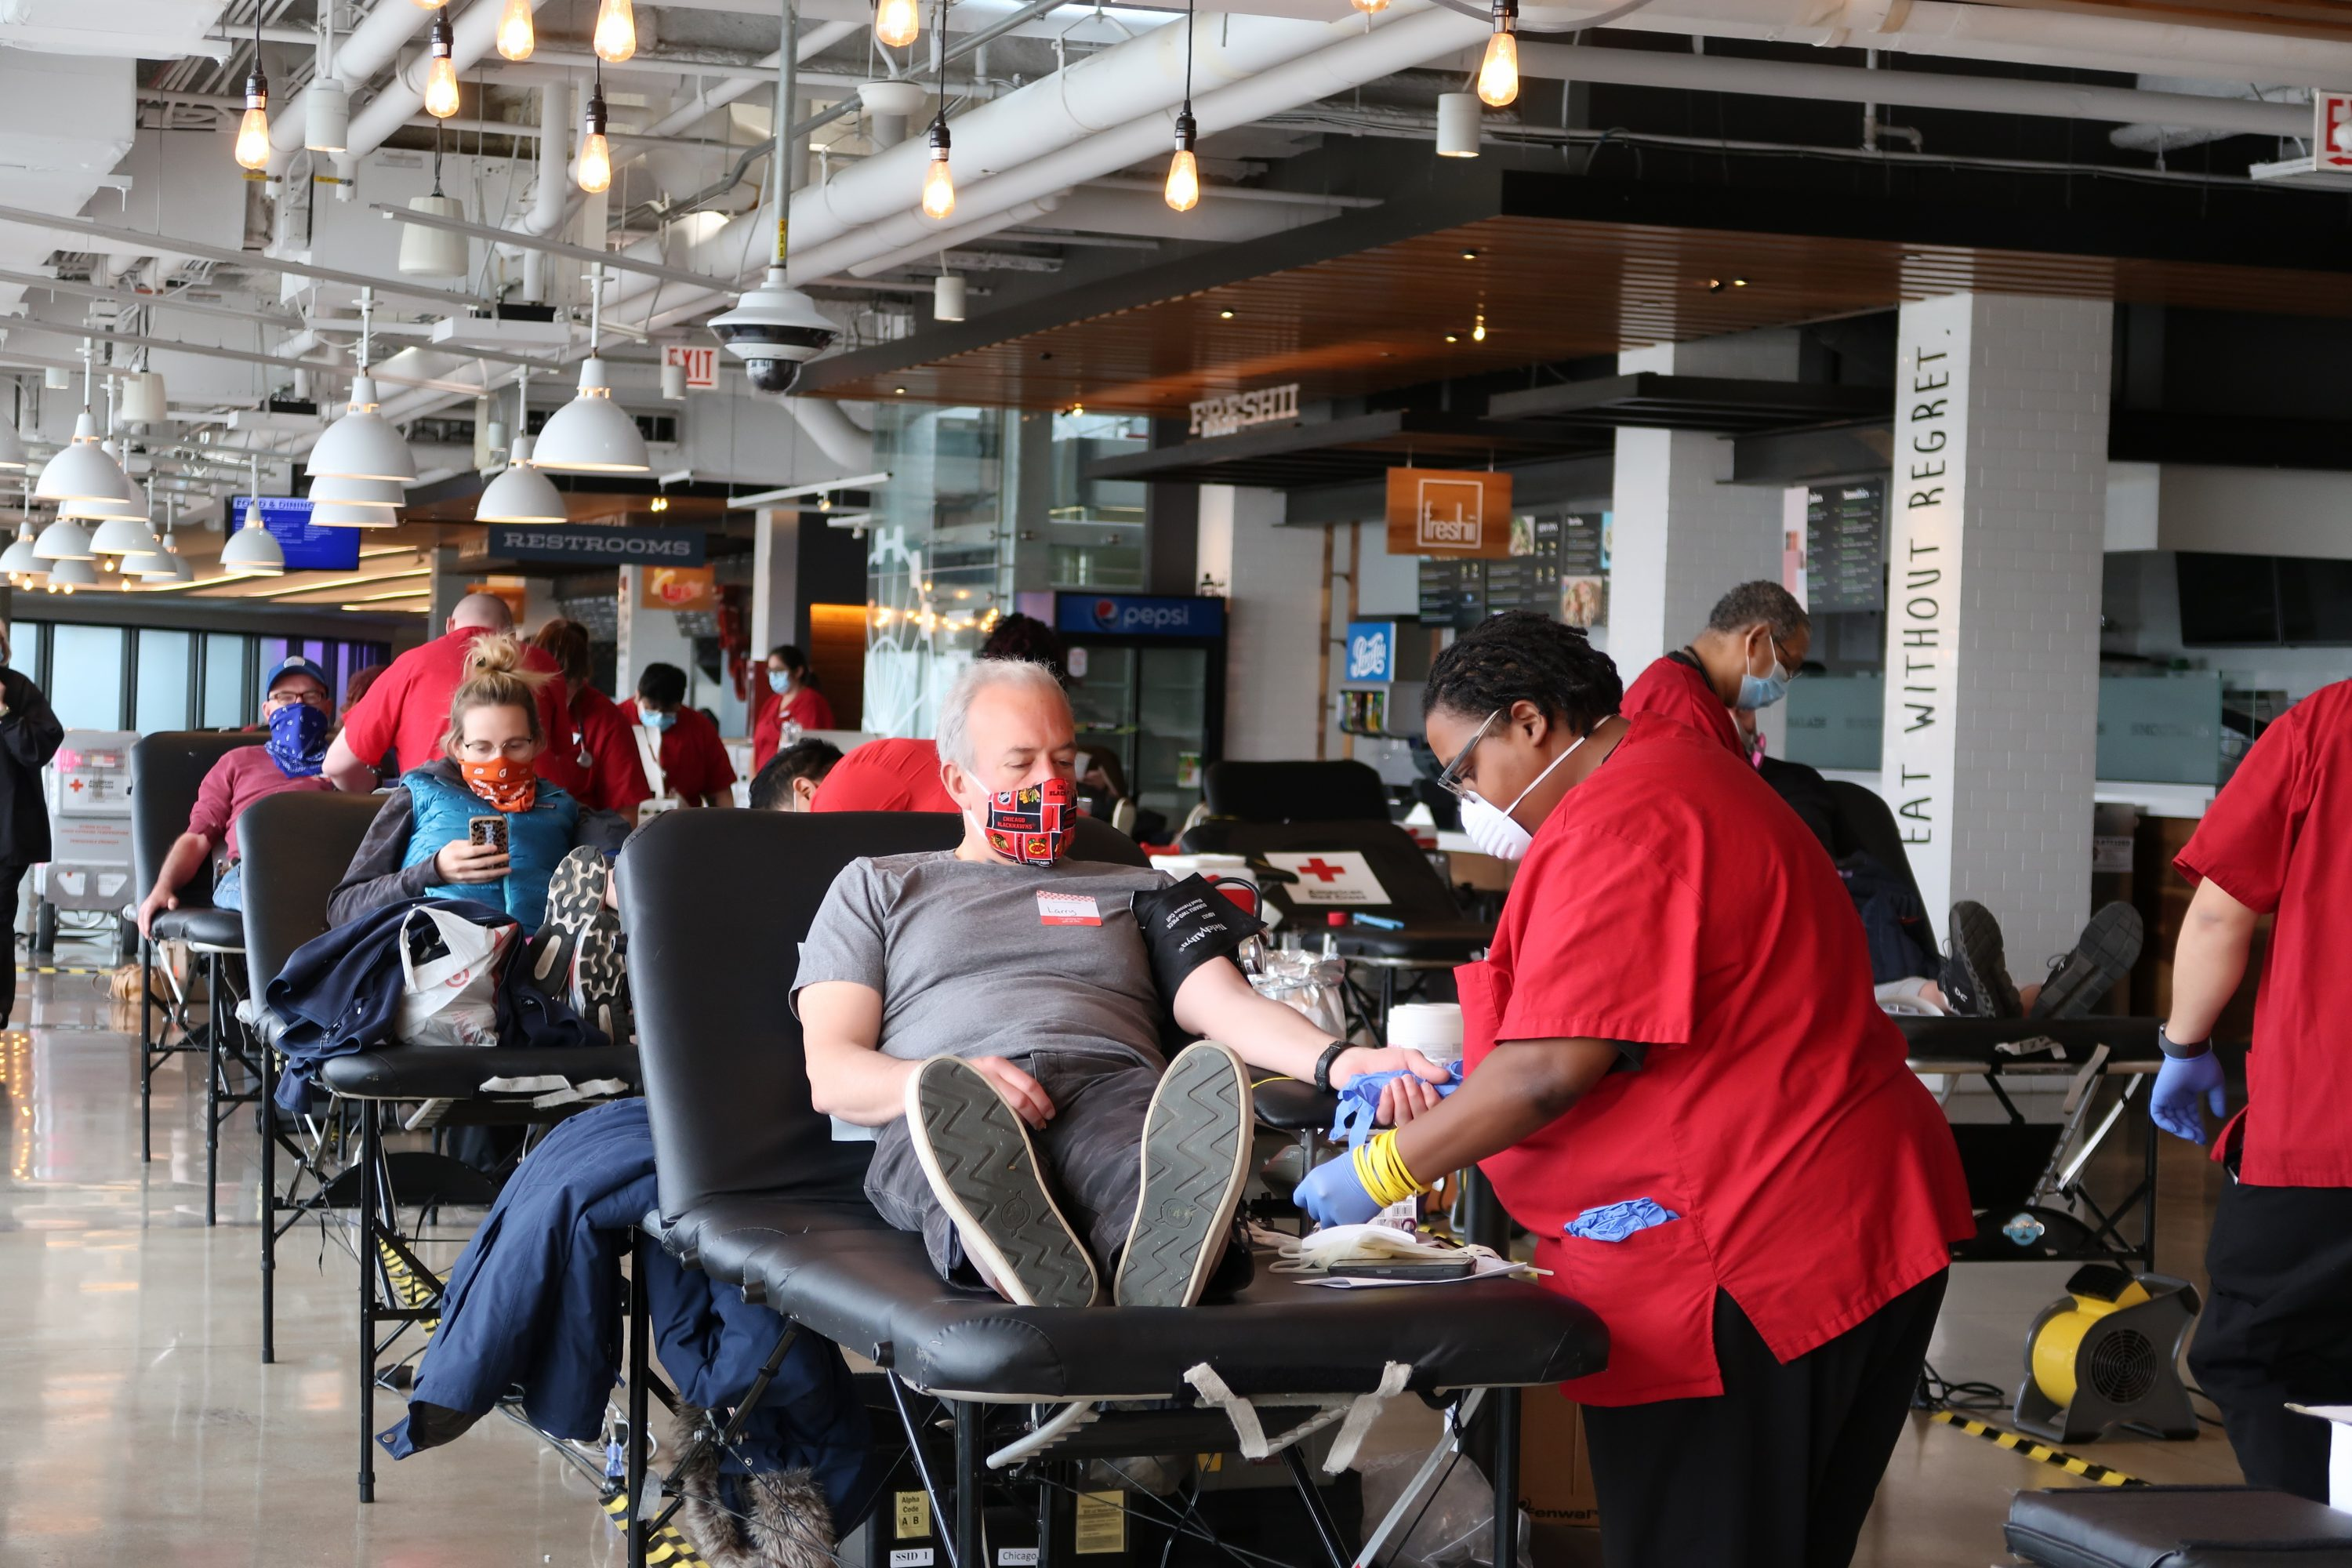 Navy Pier Set to Host Second Blood Drive with American Red Cross on May 20